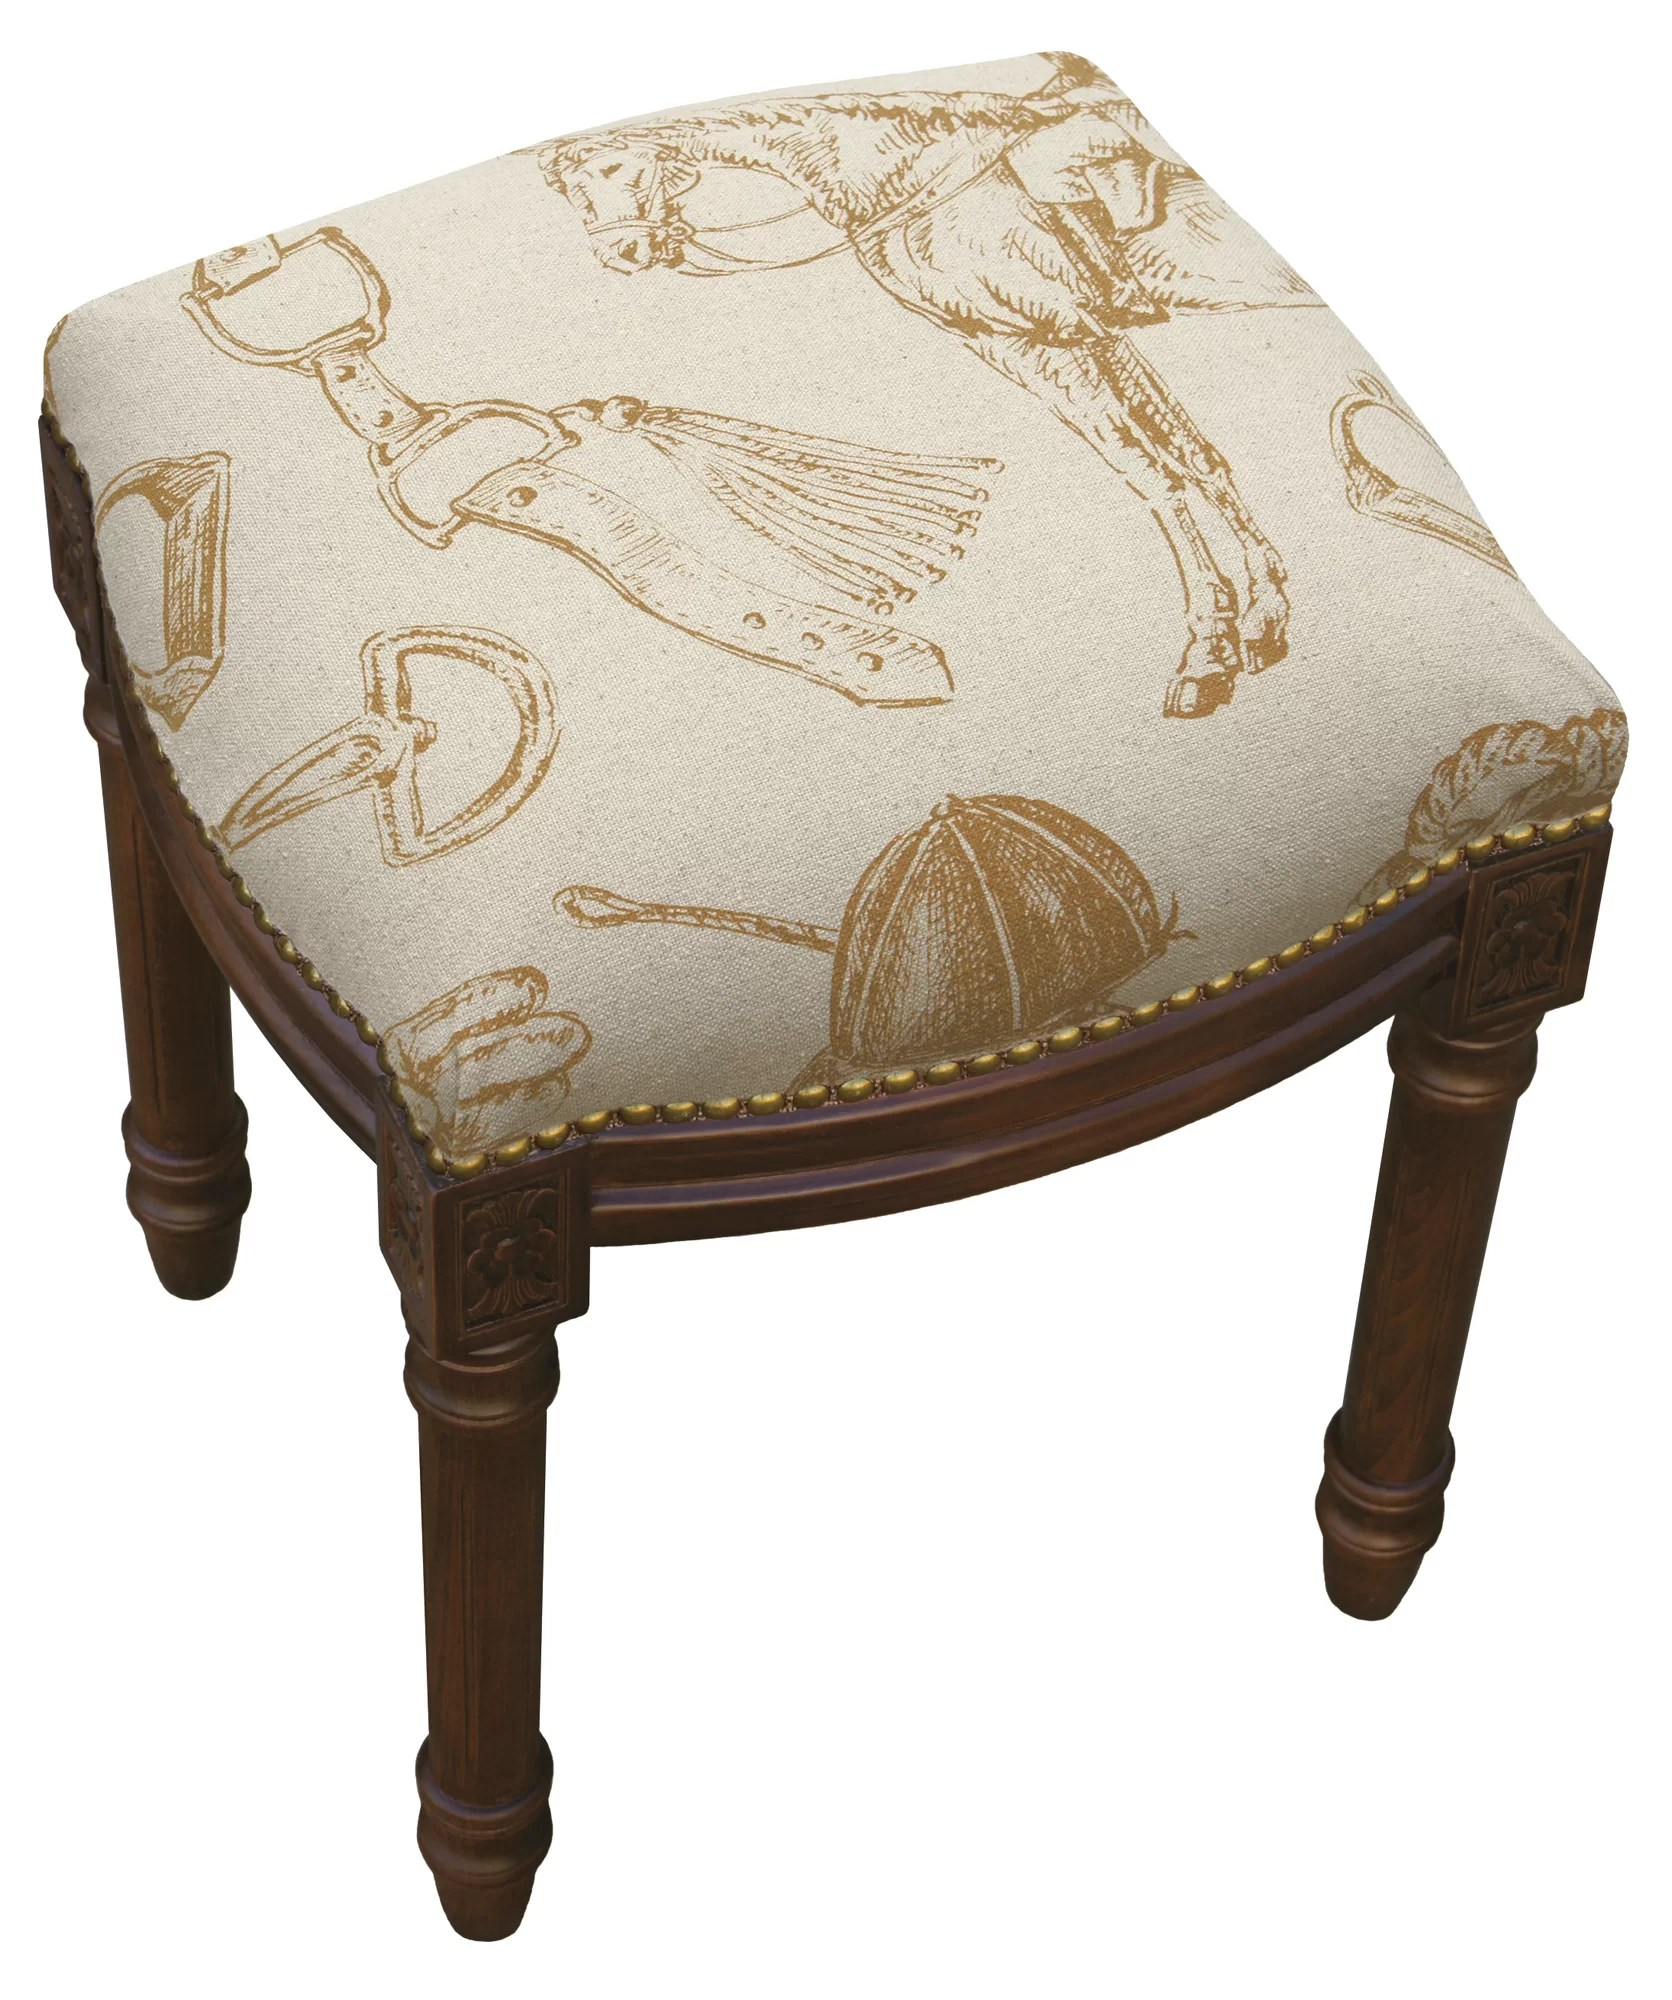 Upholstered Vanity Chair 123 Creations Equestrian Linen Upholstered Vanity Stool